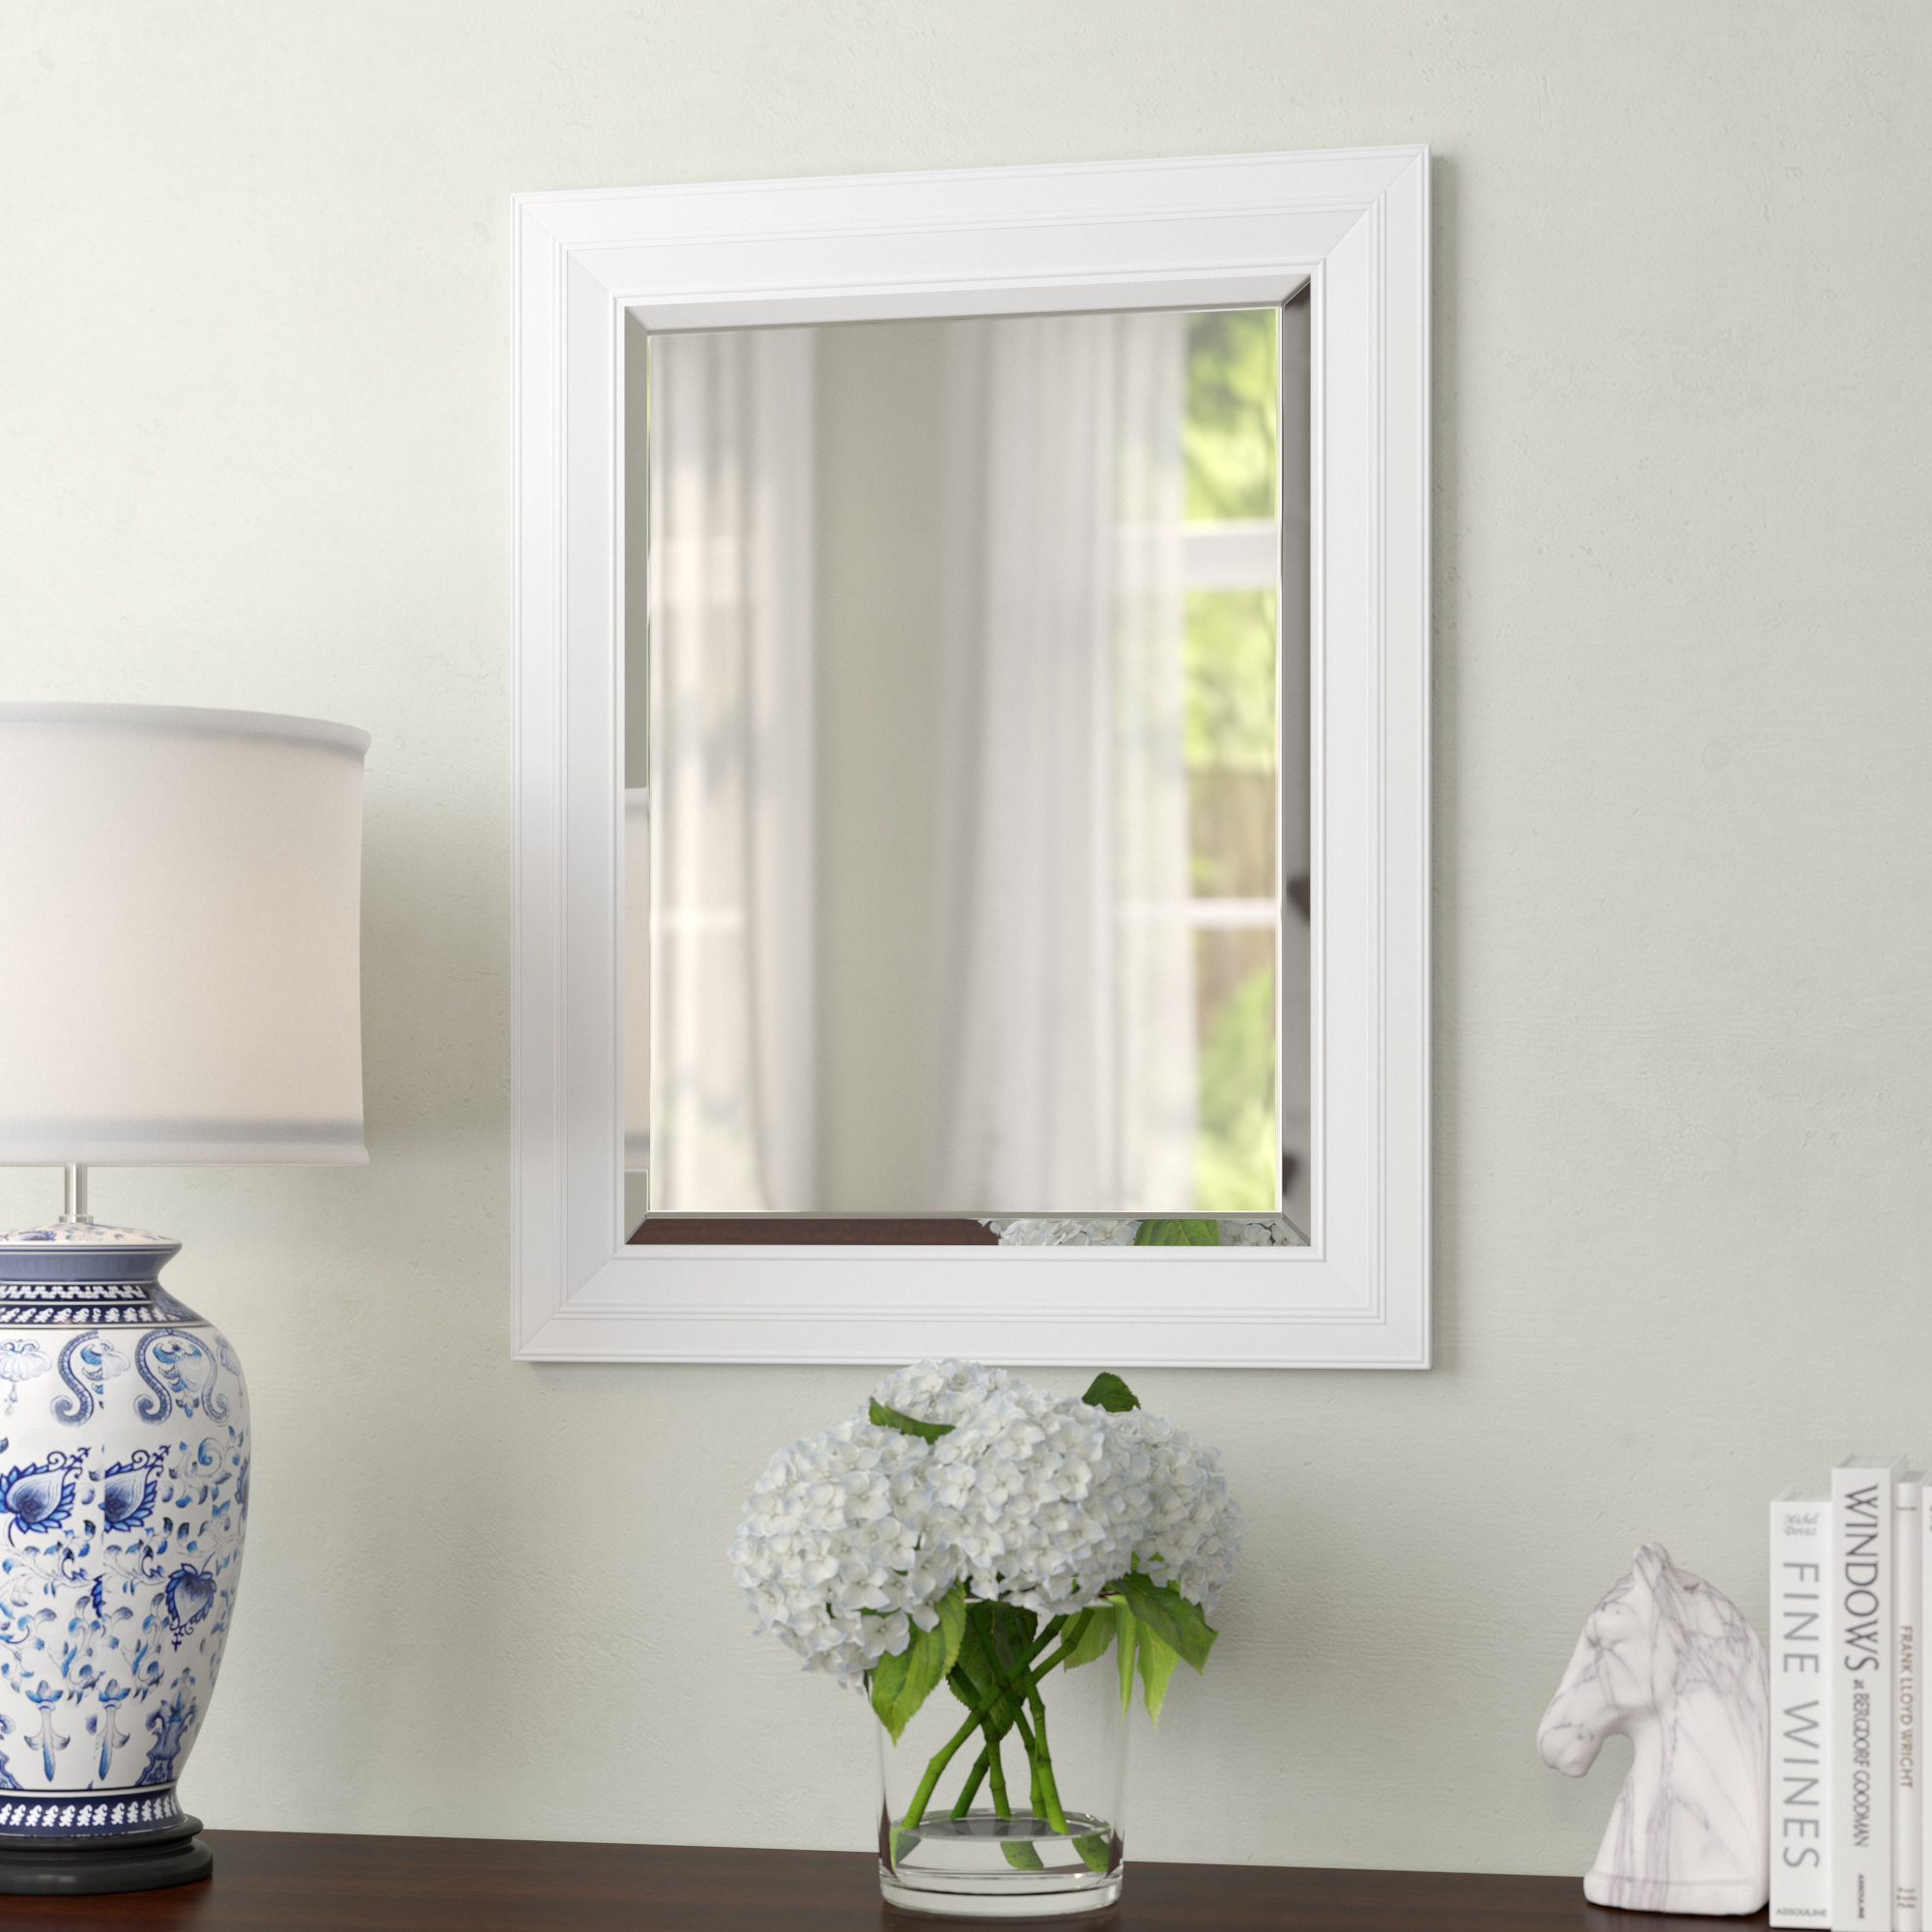 Giovanni Classic Decorative Traditional Beveled Accent Mirror intended for Longwood Rustic Beveled Accent Mirrors (Image 9 of 30)